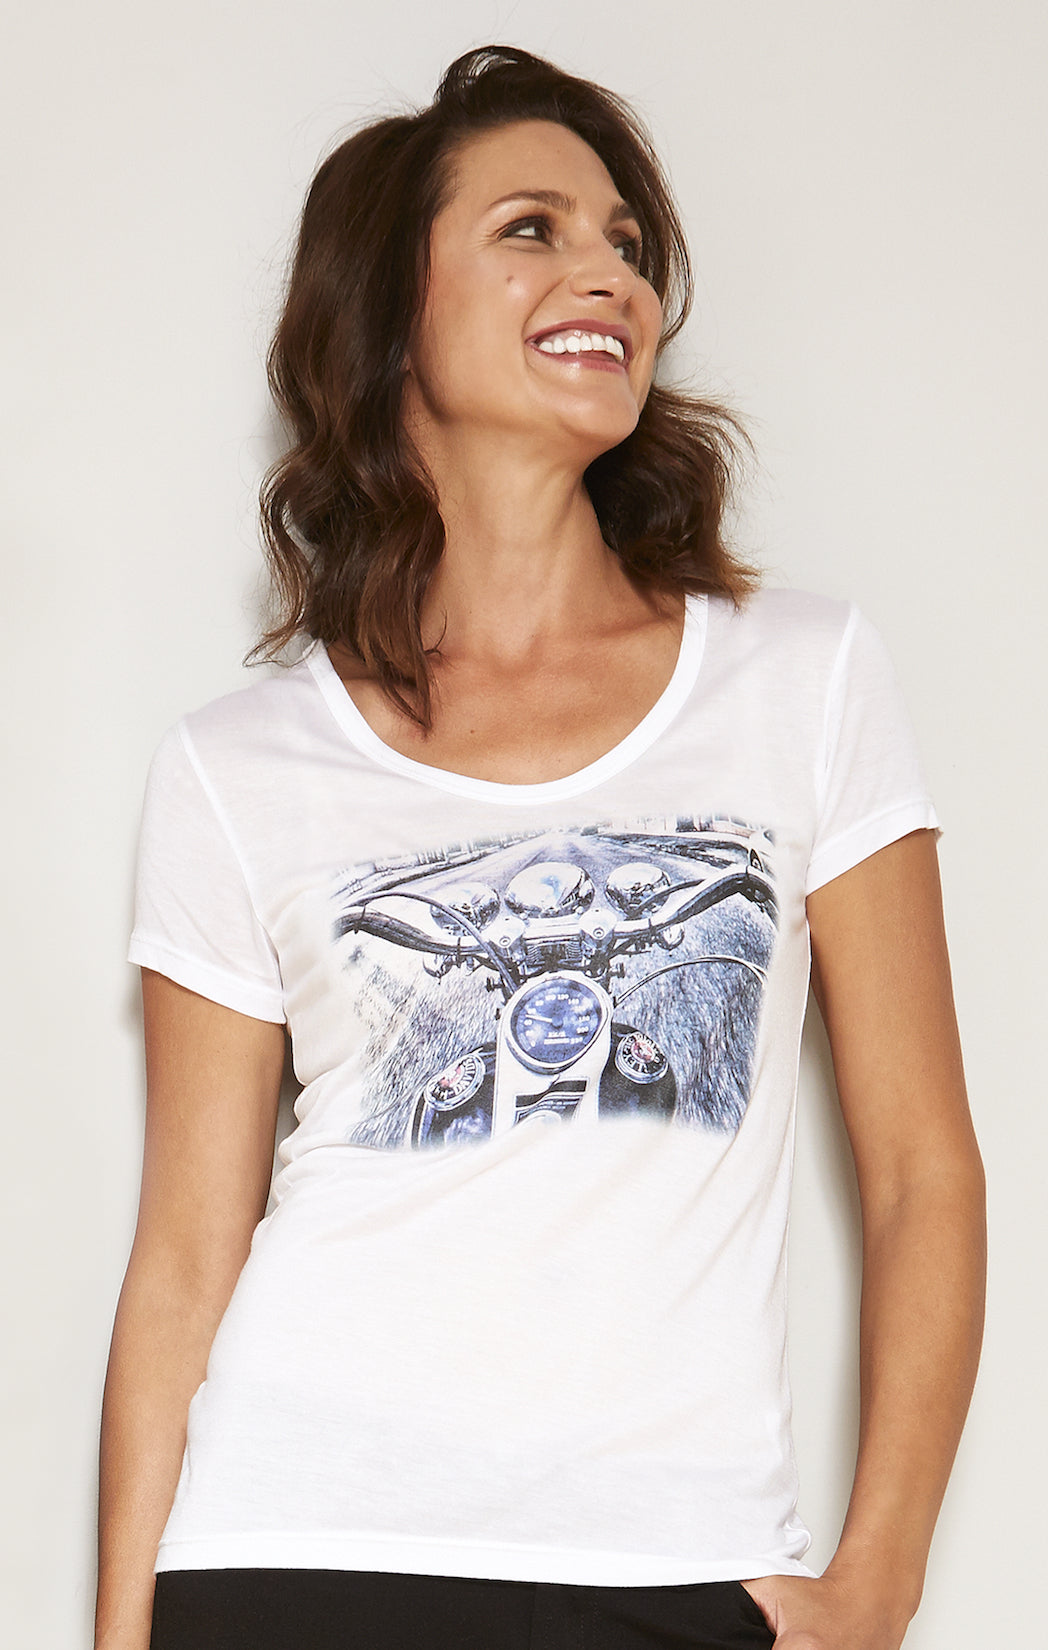 Harley Open Road Graphic T-Shirt